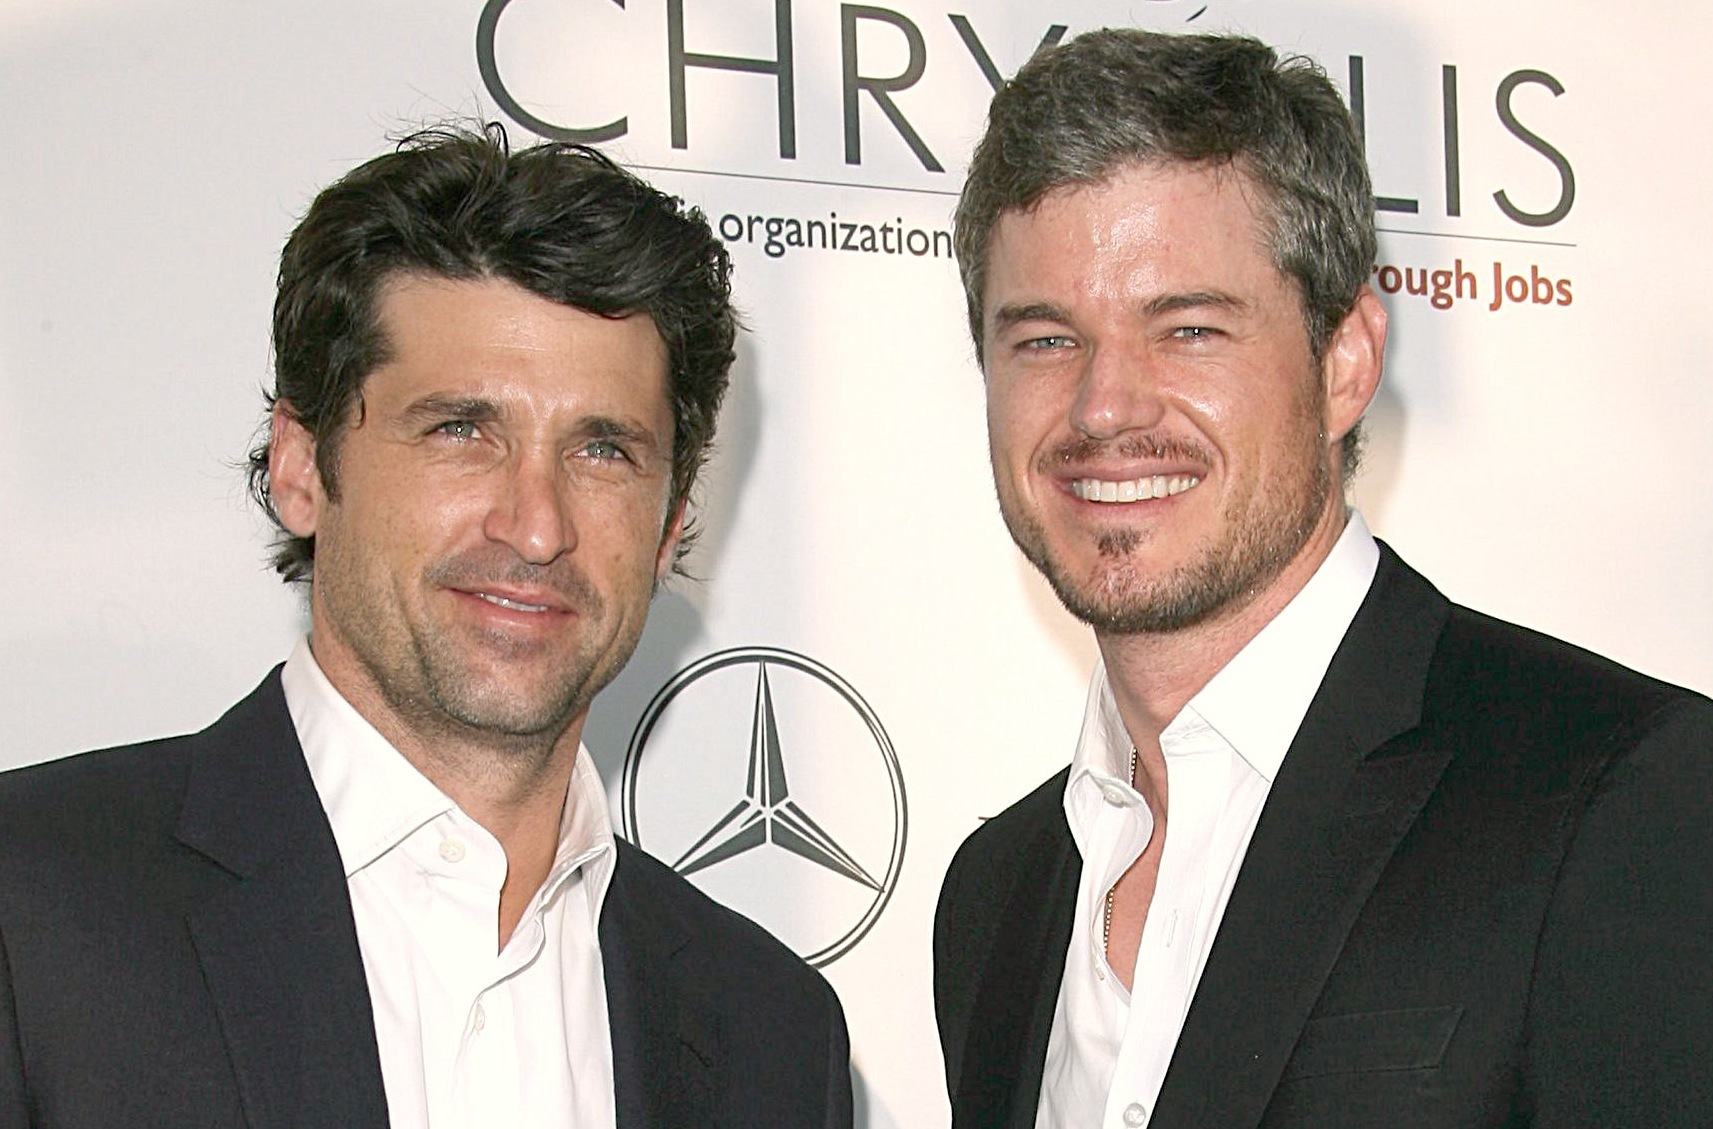 Photo of Eric Dane & his friend actor   Patrick Dempsey - Grey